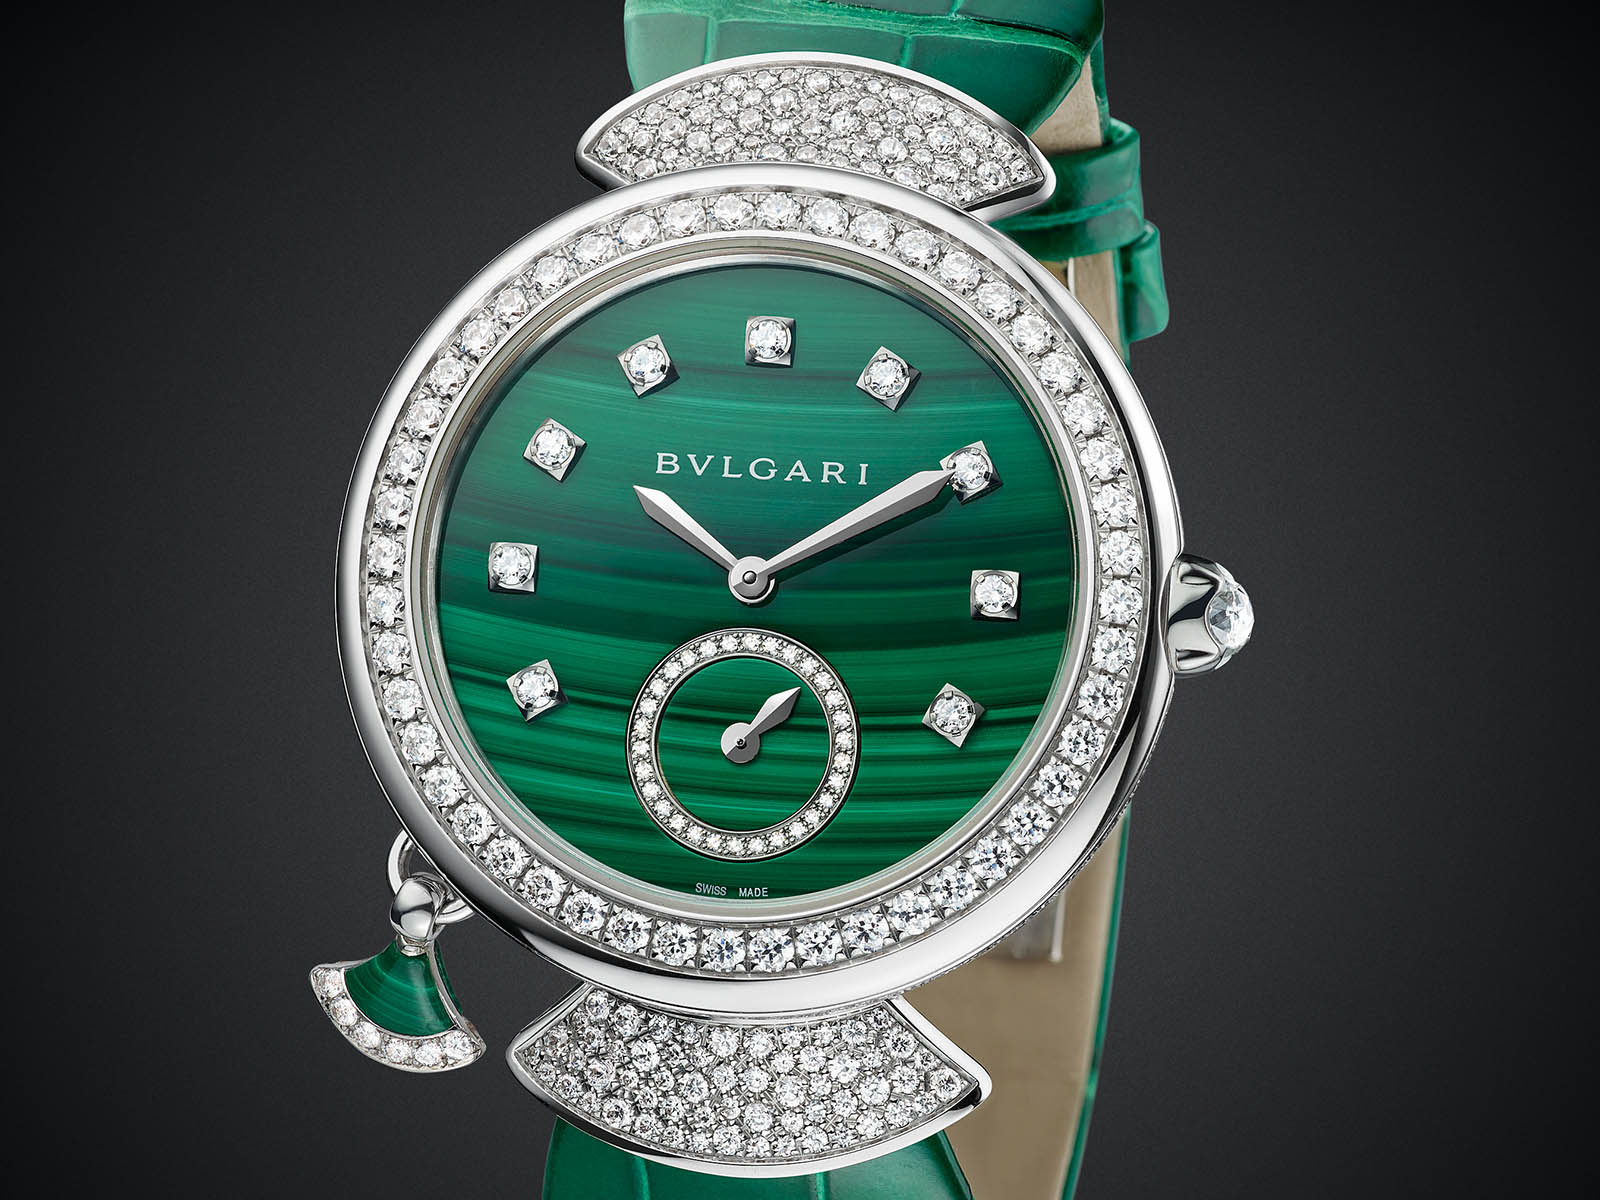 103282-bulgari-divas-dream-finissima-minute-repeater-malachite-3.jpg